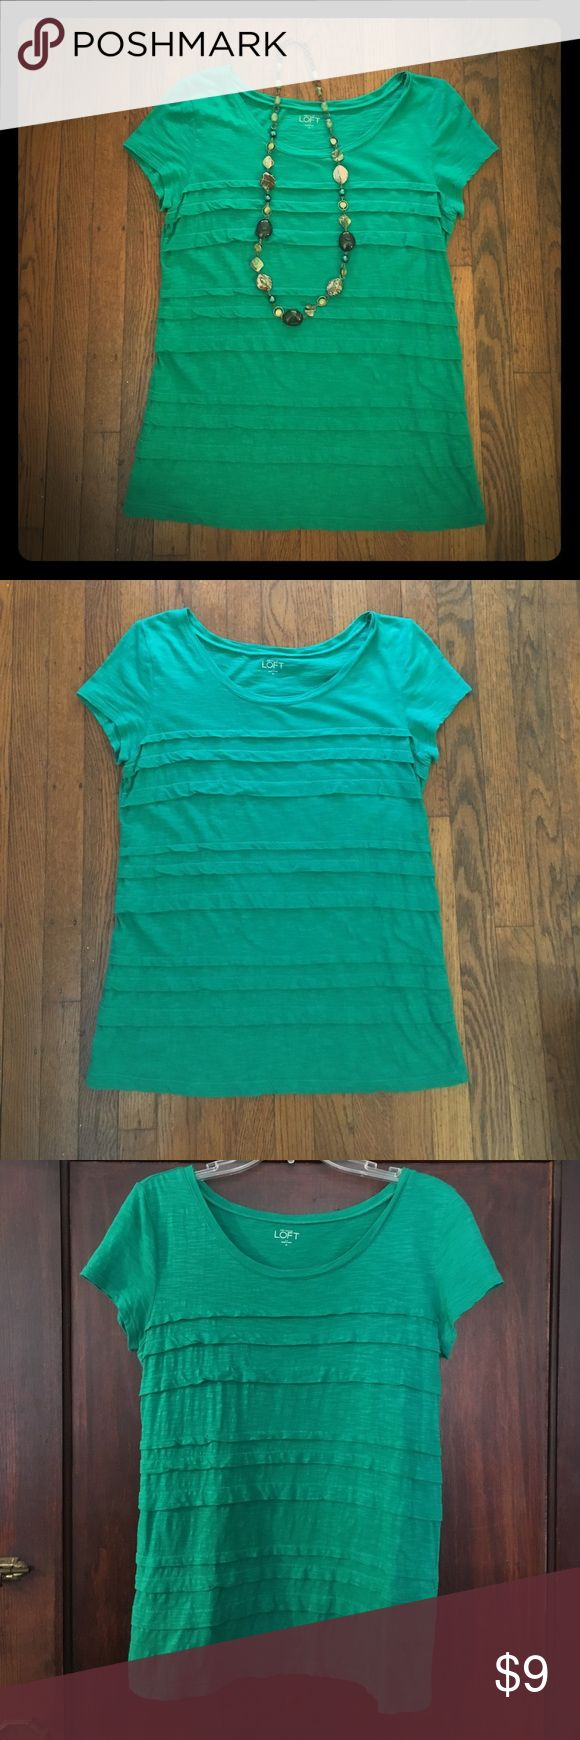 Loft short sleeve top Green short sleeve top. Excellent used condition, worn 2-3 times. Very soft and comfortable. Has a tiered design on front. Can dress it up or wear it casually. Smoke free home. LOFT Tops